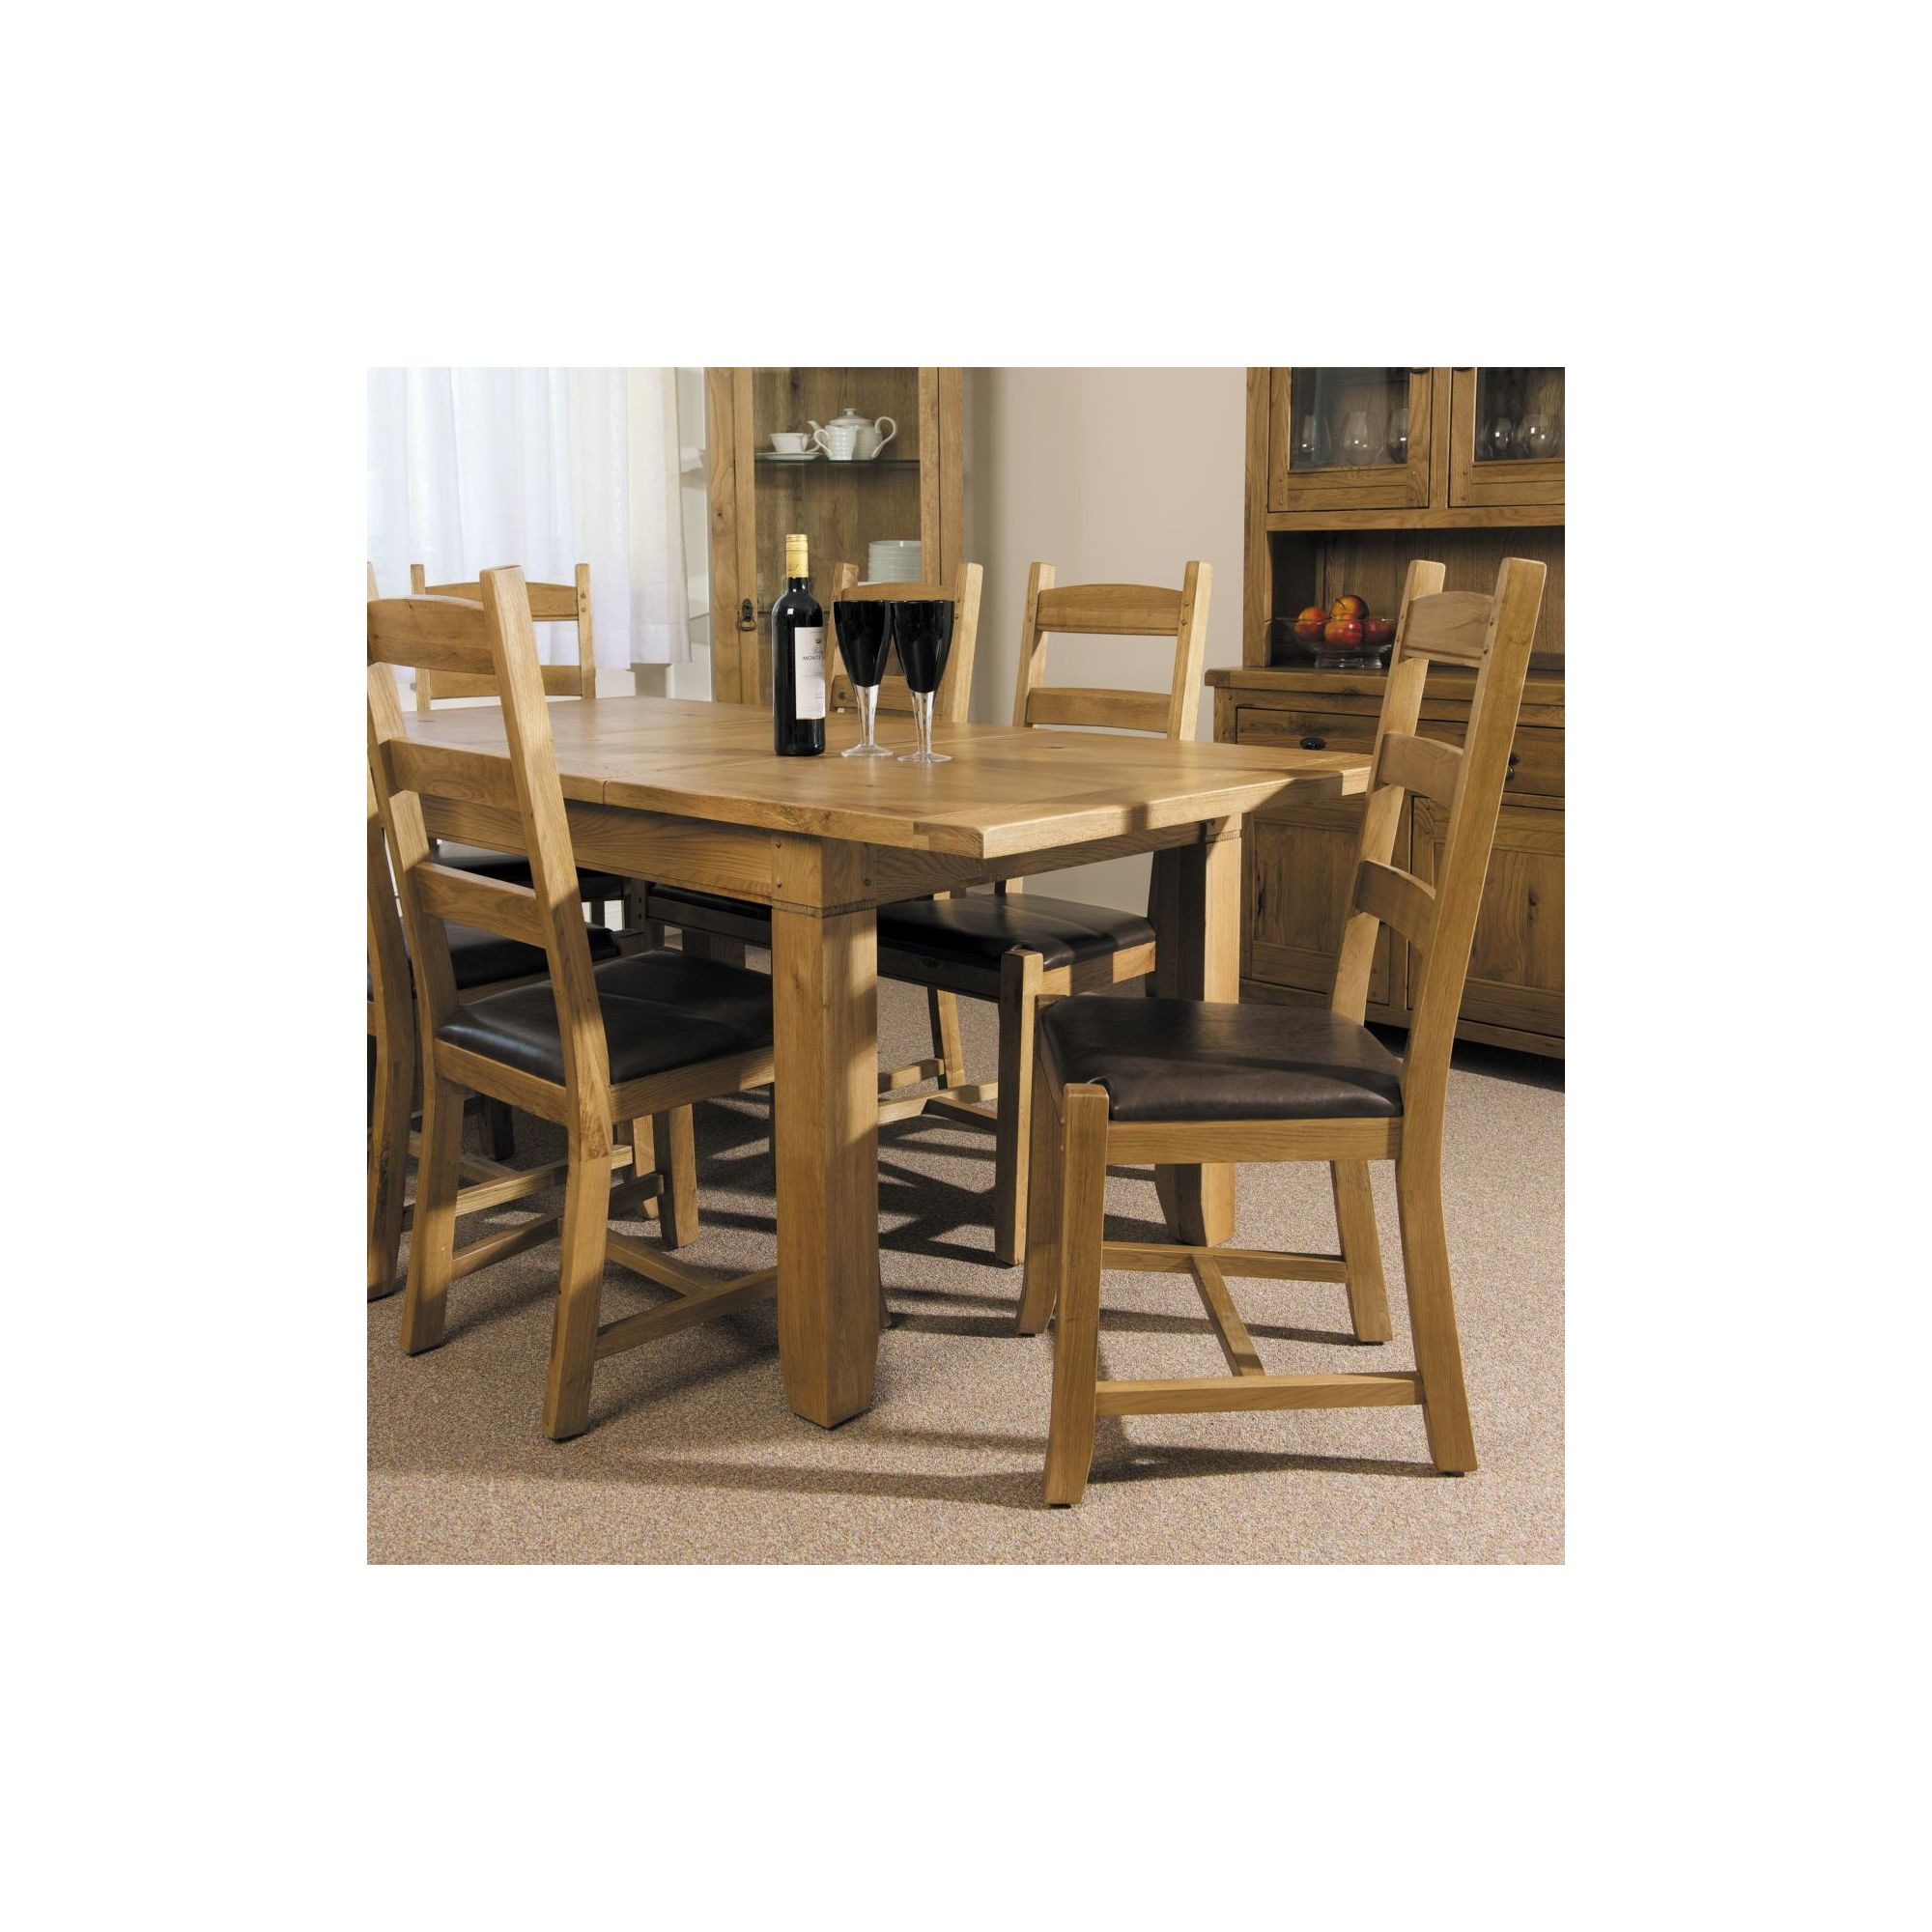 Kelburn Furniture Veneto 7 Piece Rustic Oak Dining Collection